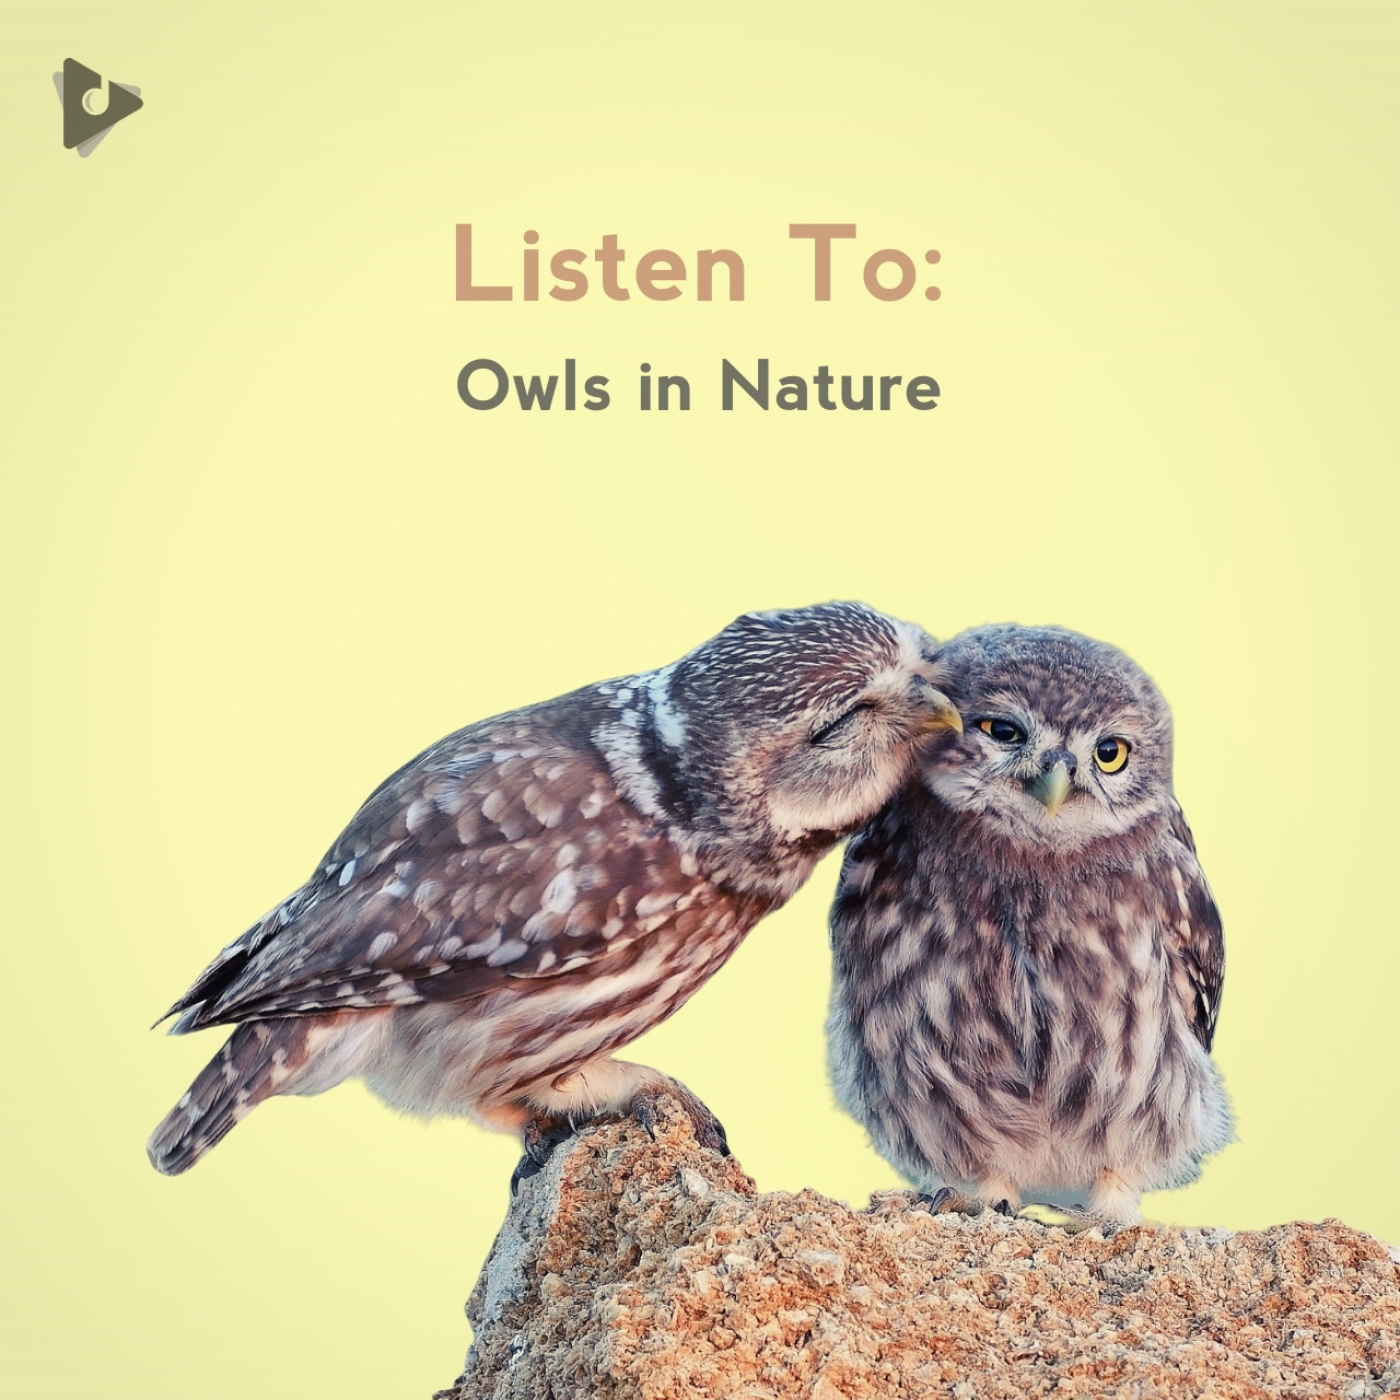 Listen To: Owls in Nature